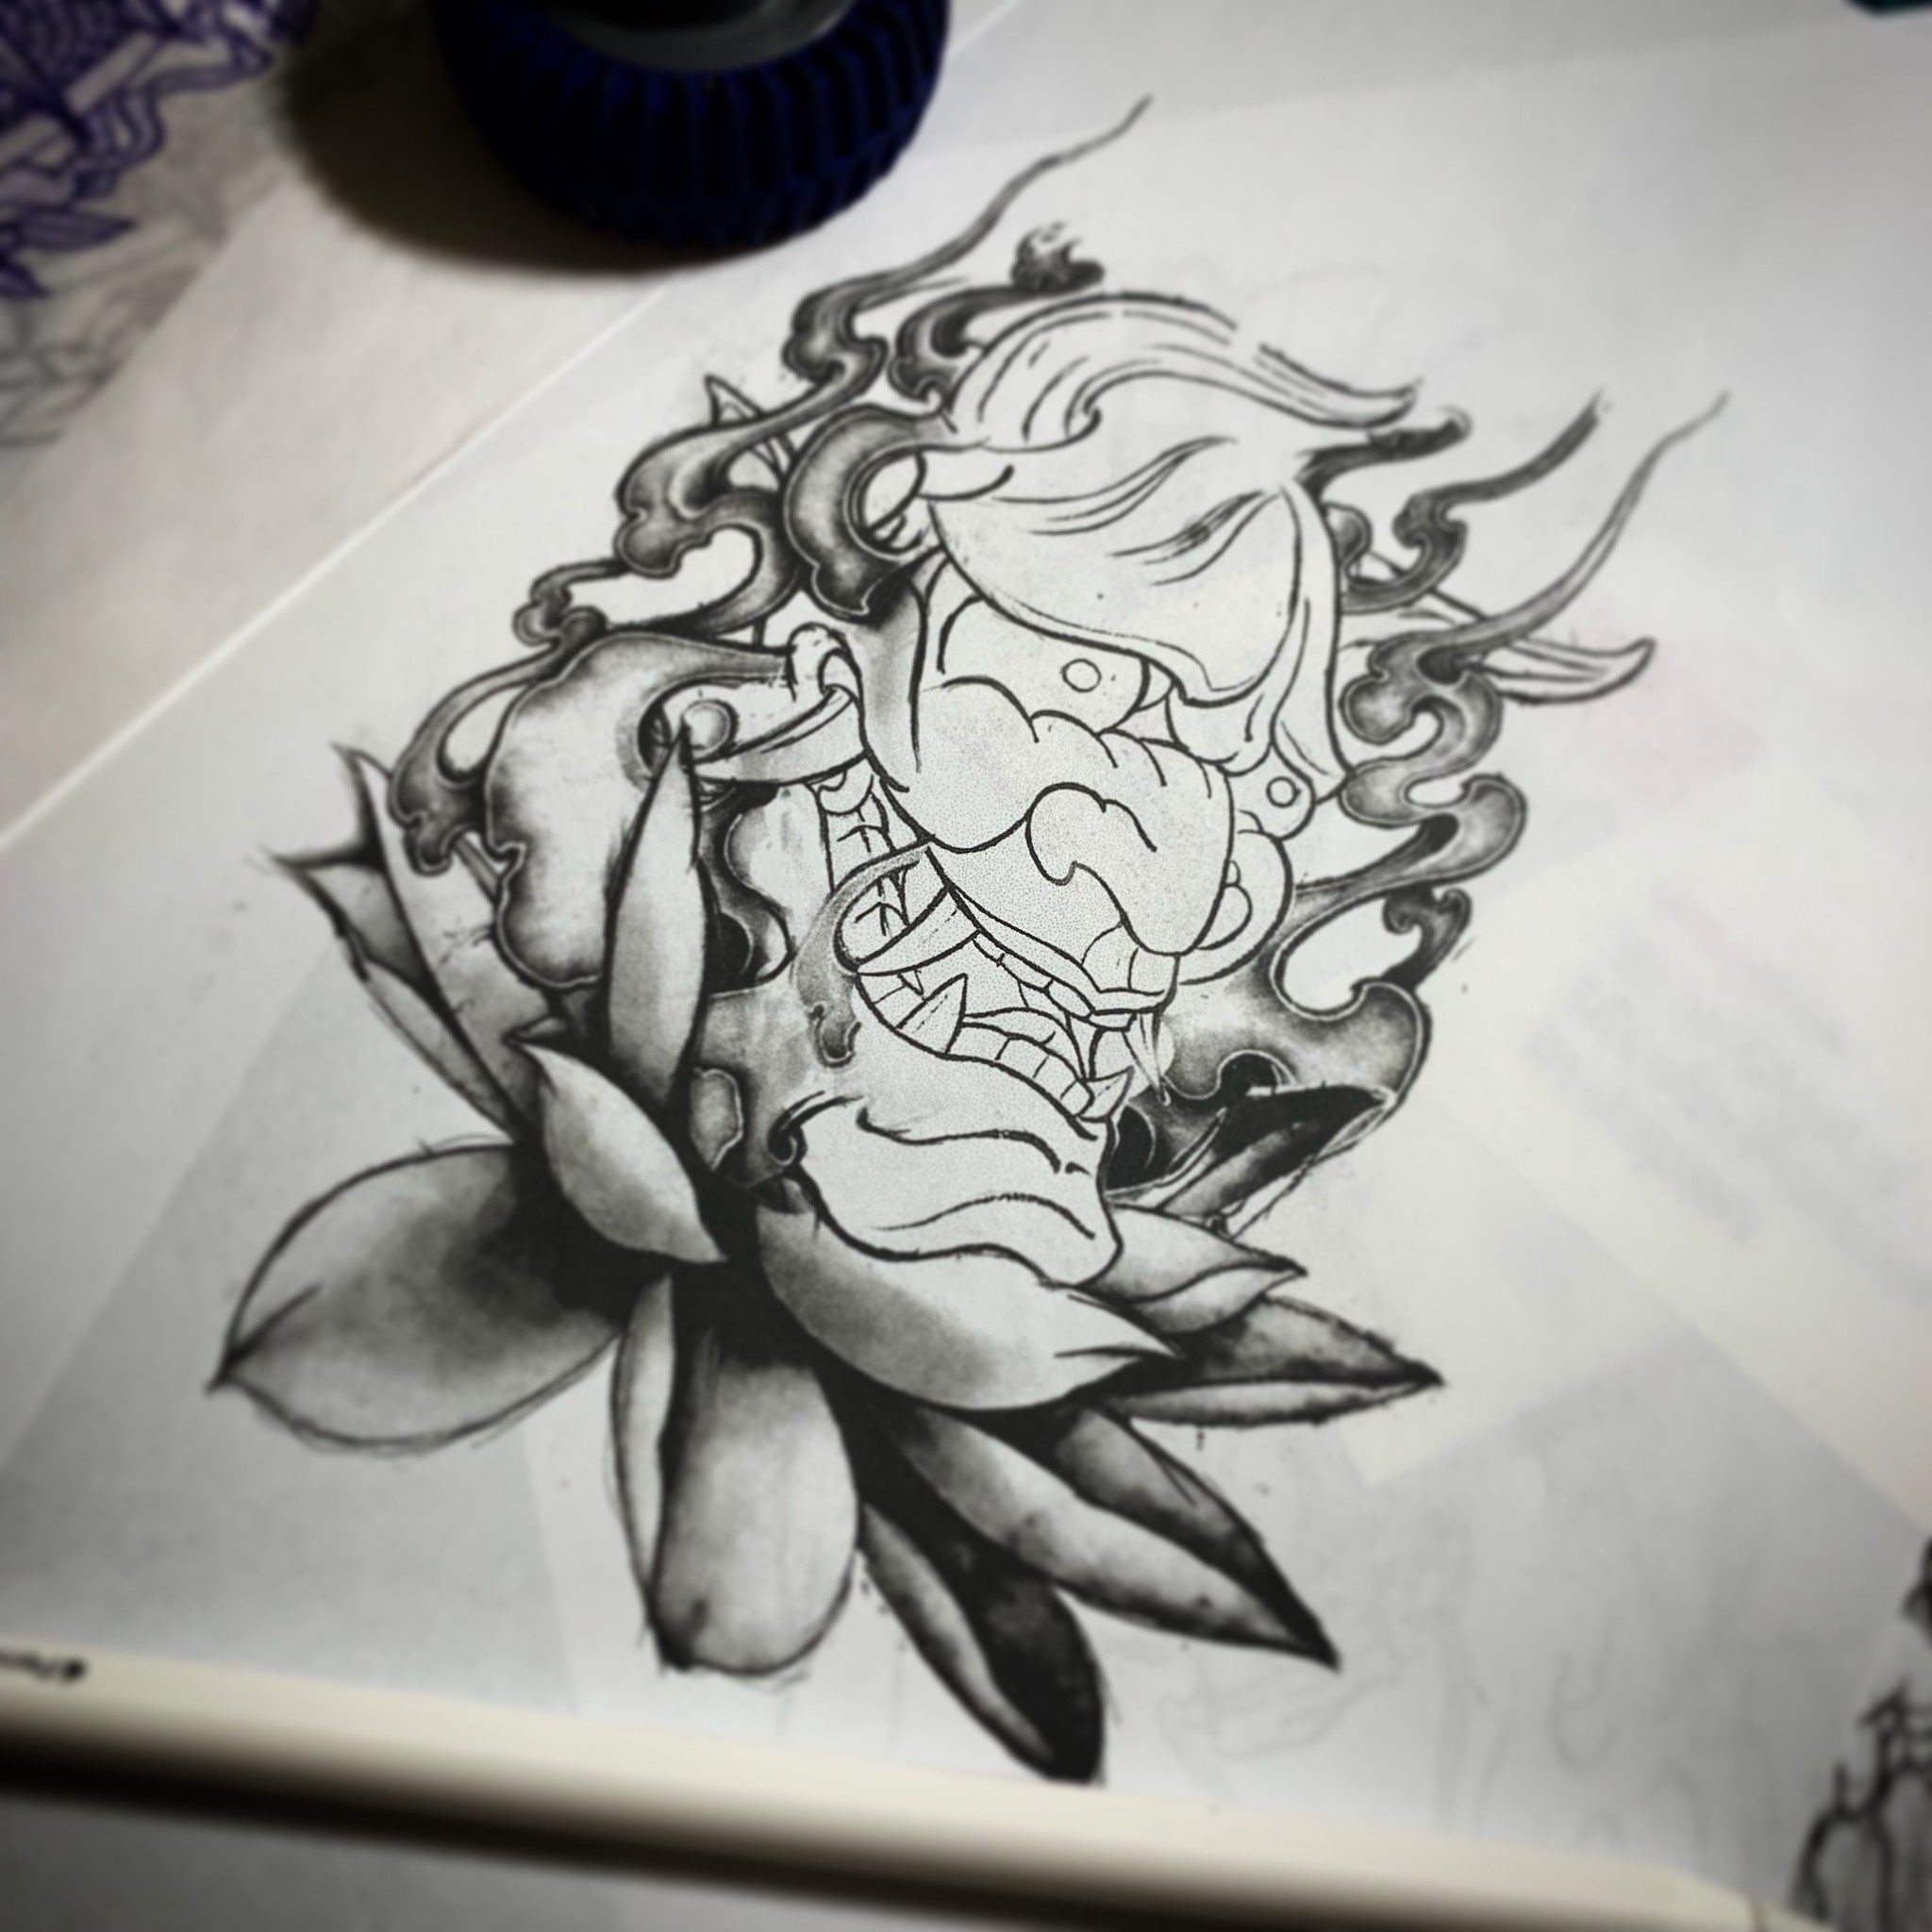 Tattoo Design Art Works :Coming soon.....